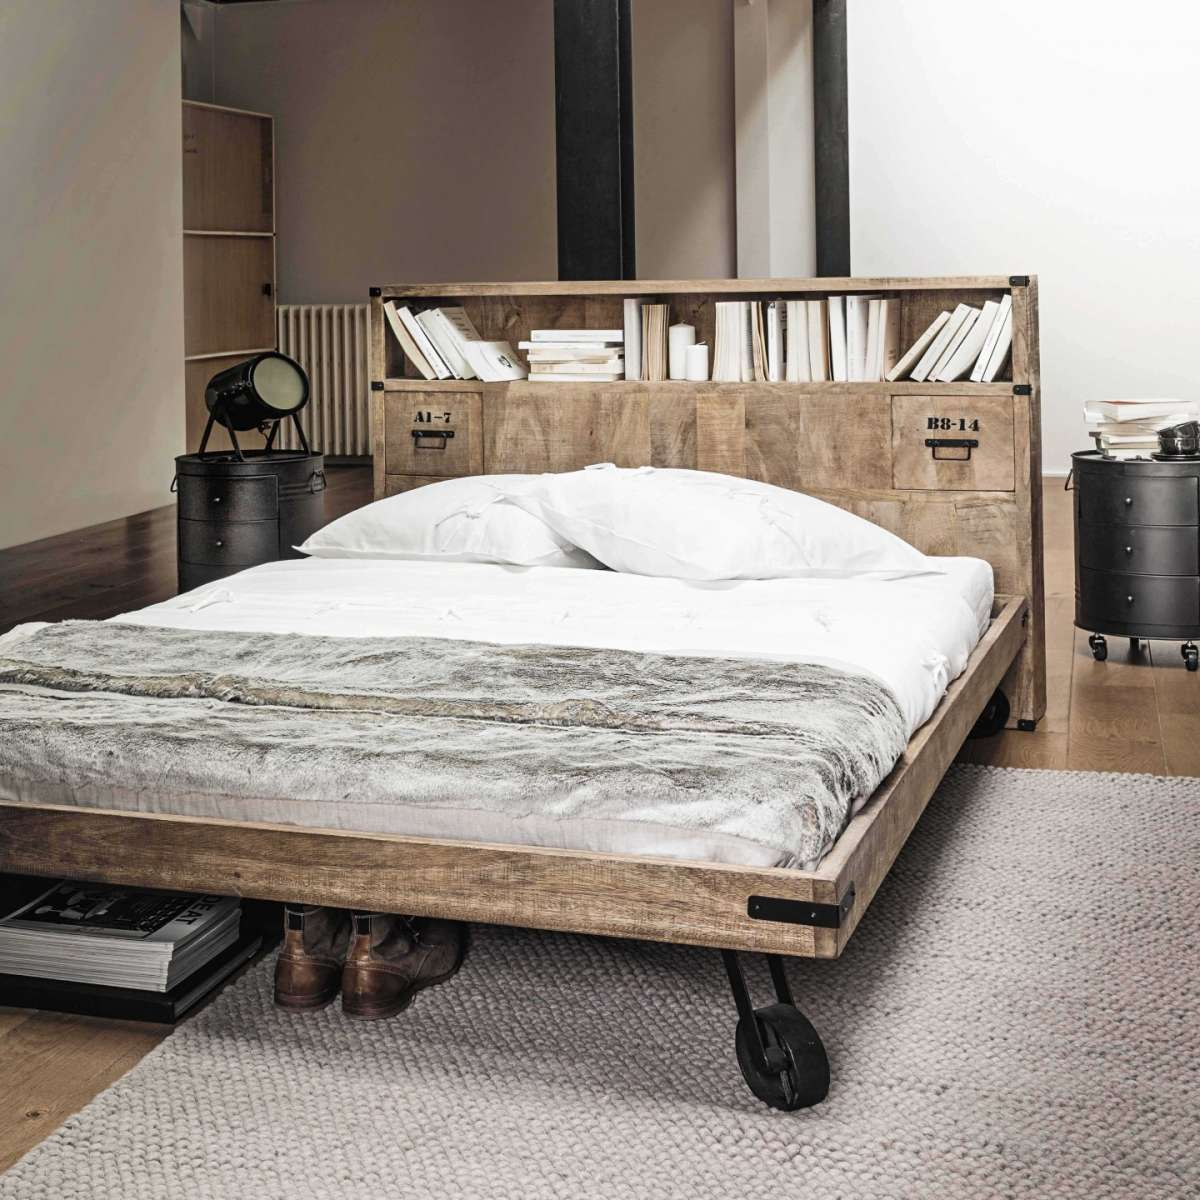 Testiere letto originali foto 15 40 design mag for Maison du monde reims